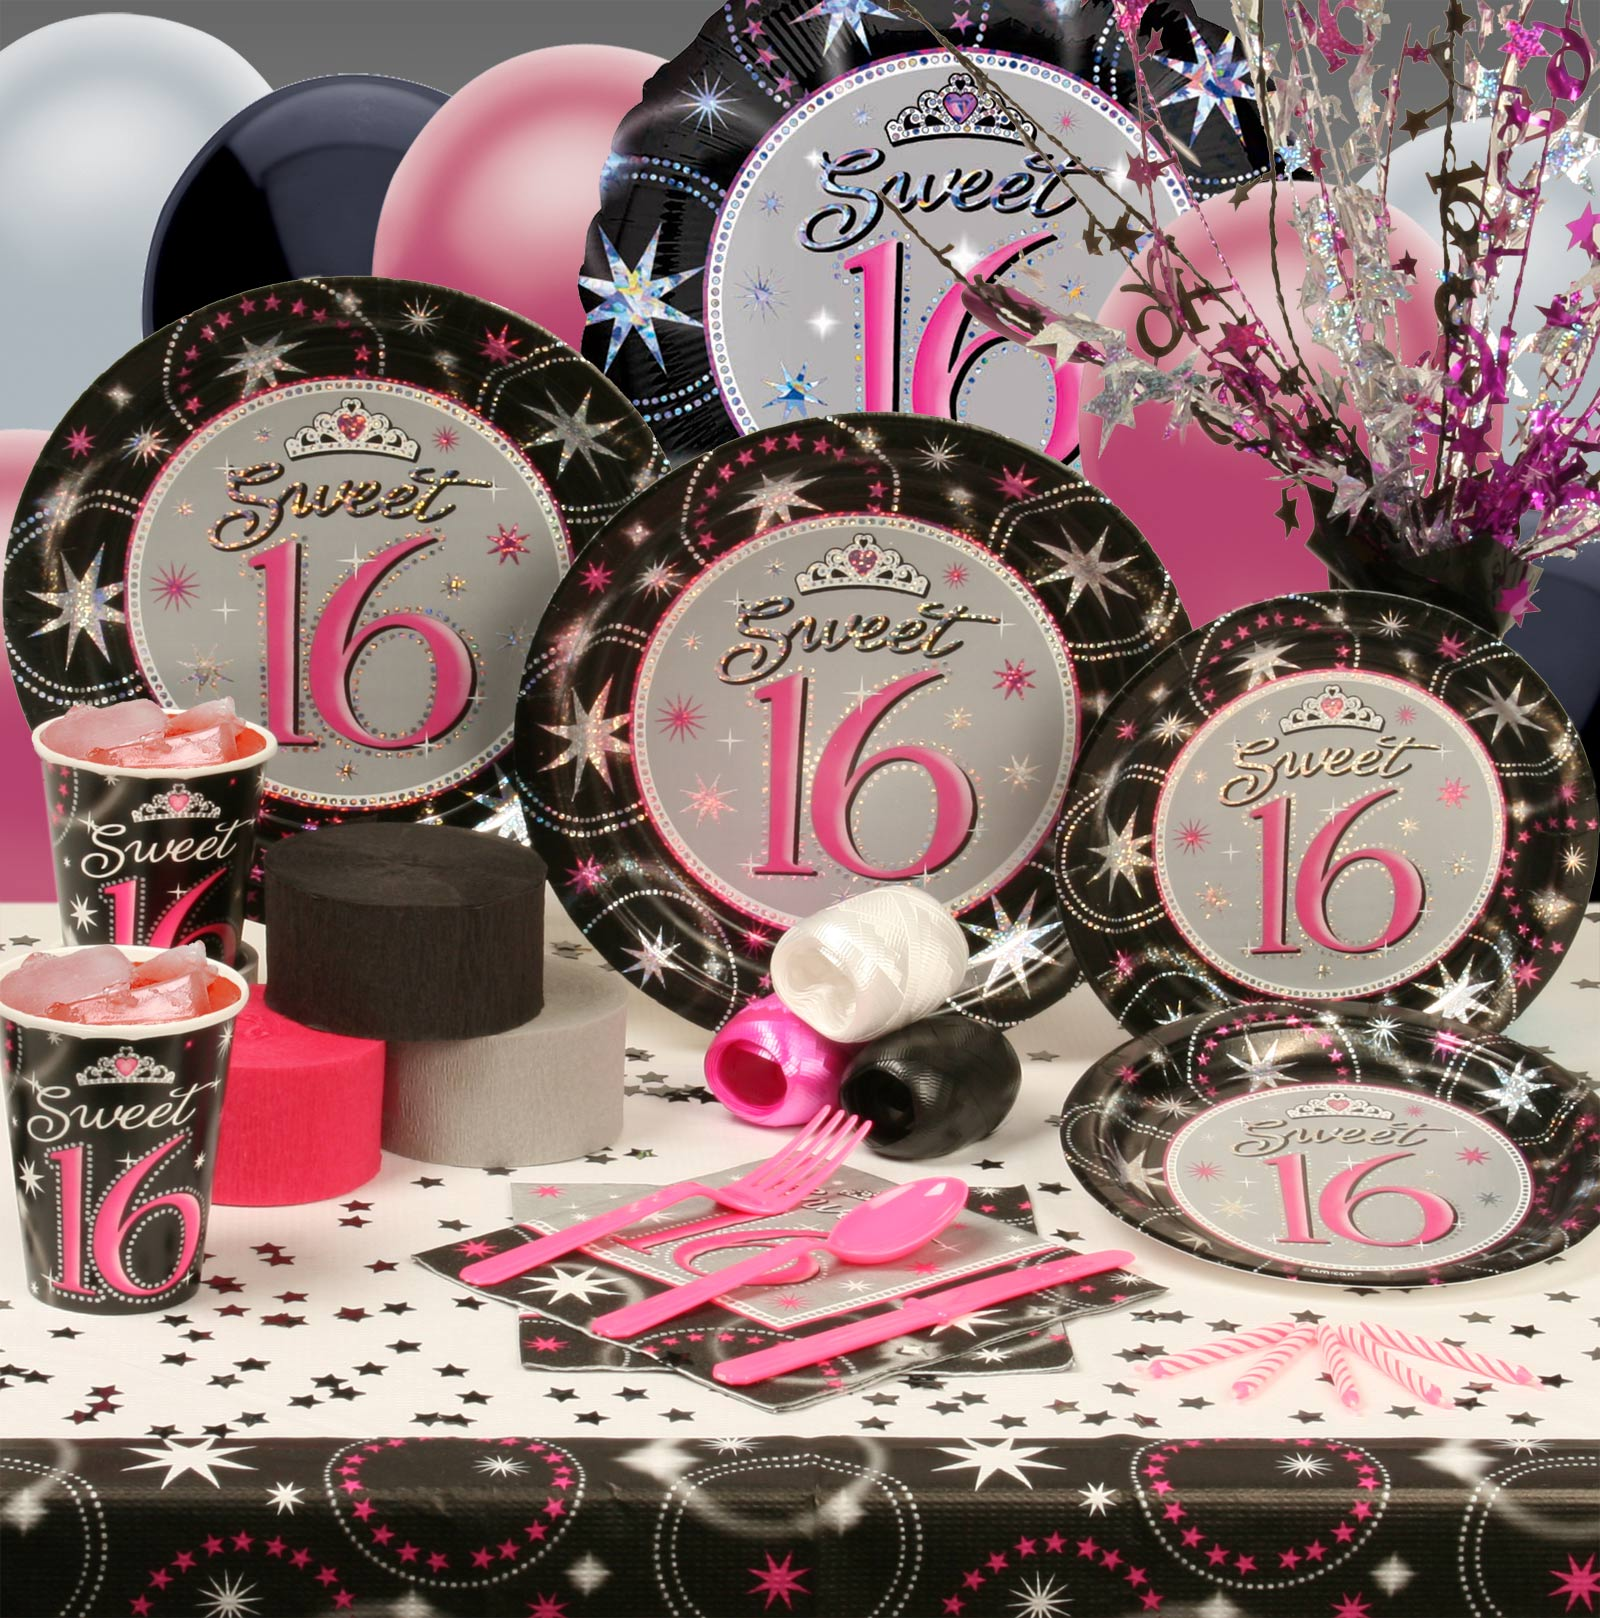 Sweet dress sweet 16 party themes for 16th birthday decoration ideas